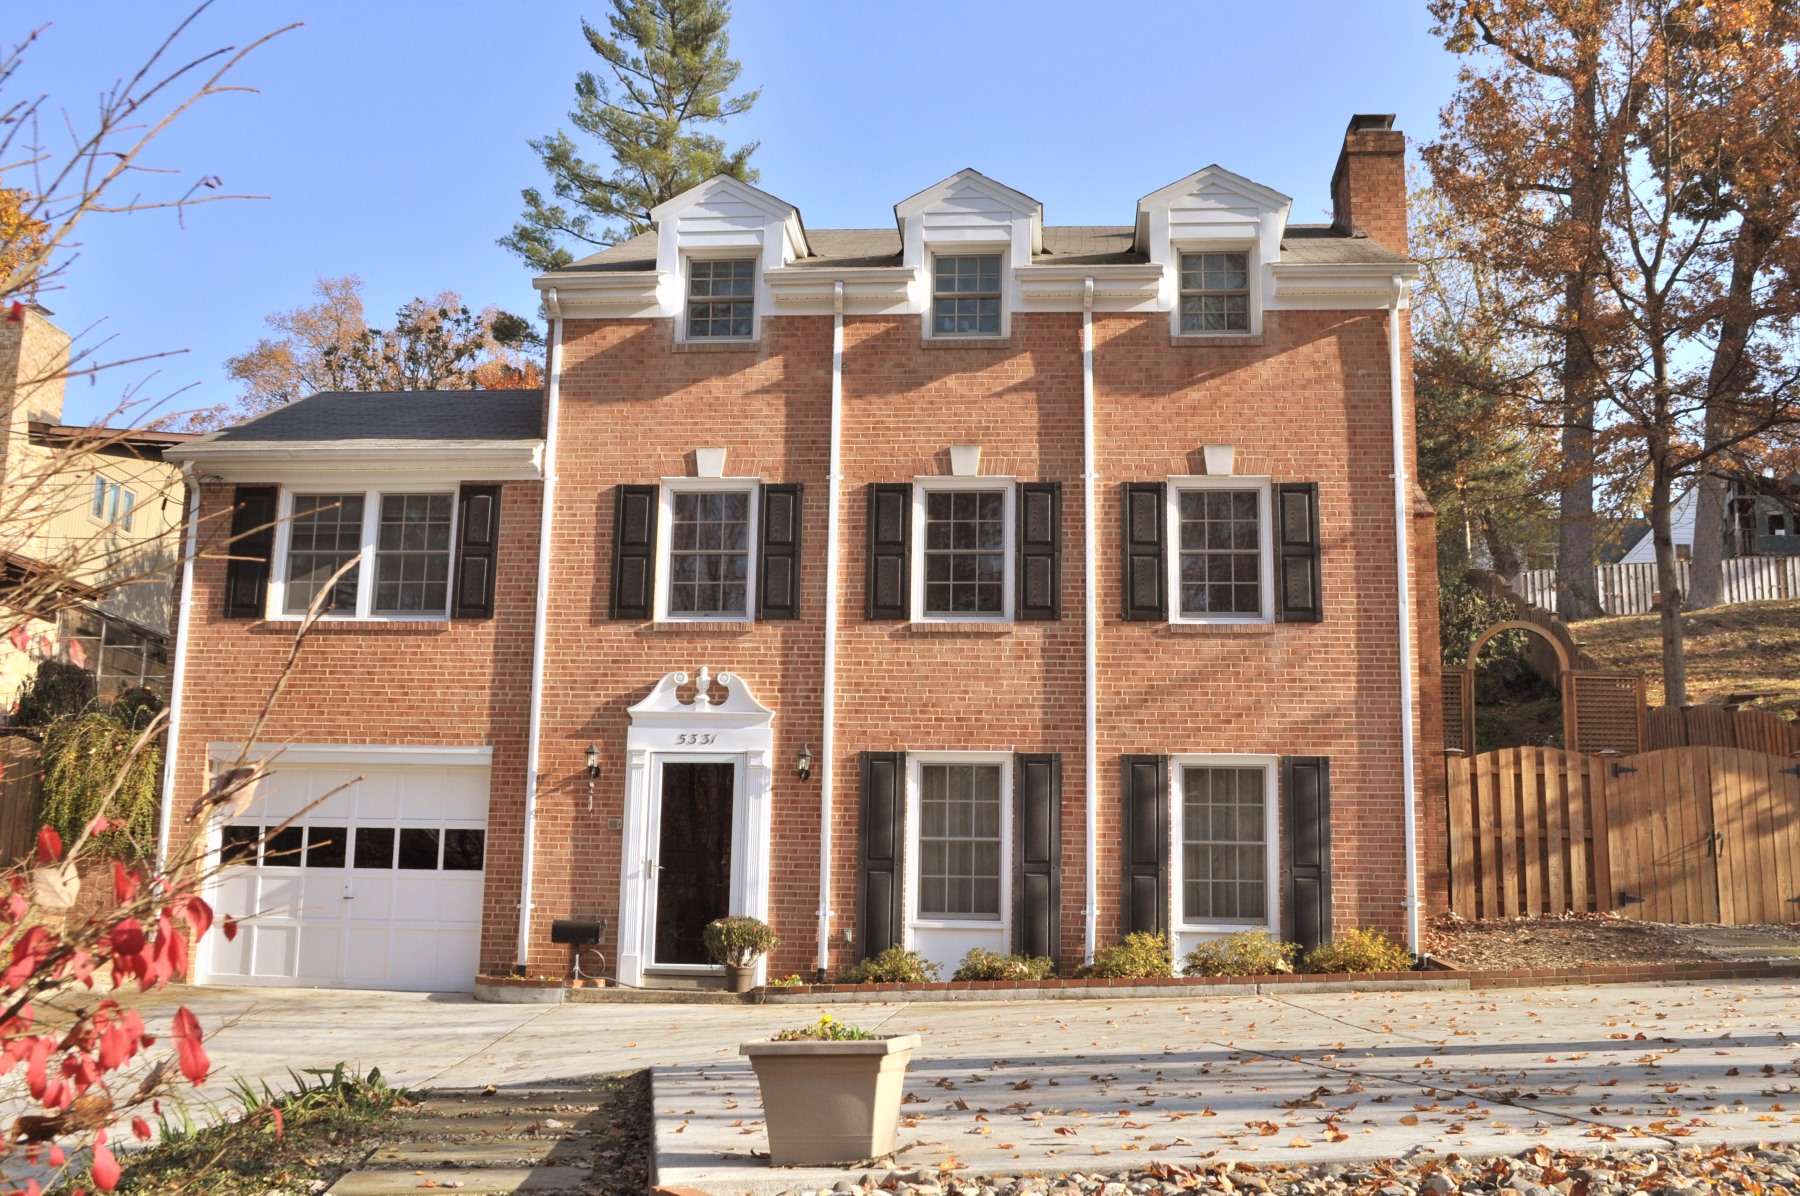 Single Family Home for Sale at 5331 Massachussetts Ave Bethesda, Maryland 20816 United States